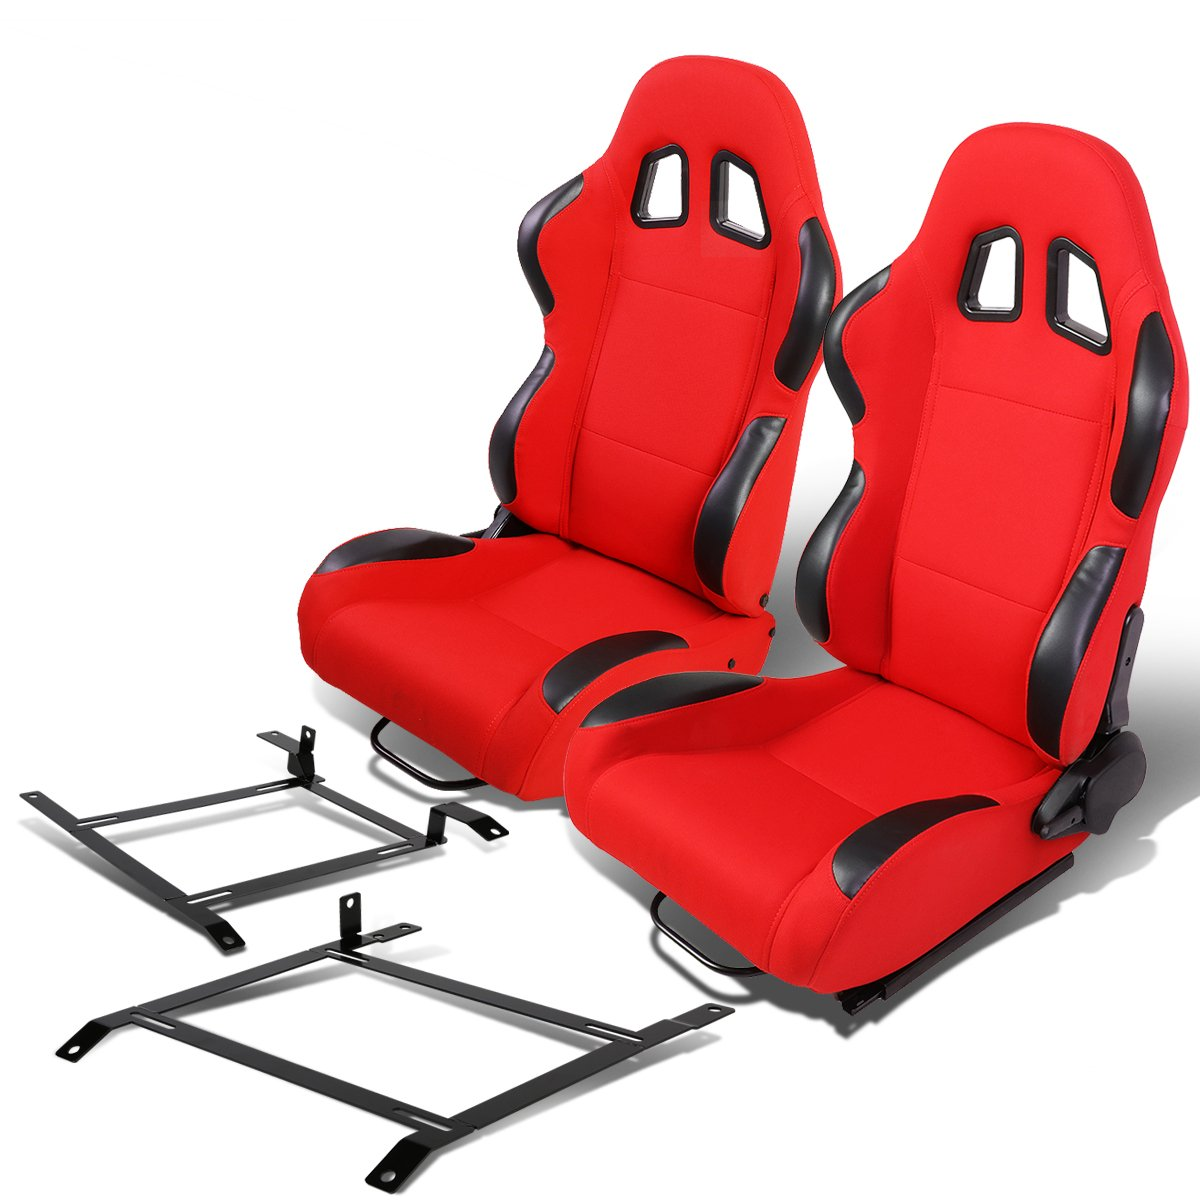 Pair of RS-001-BK-RD Woven Fabric Reclinable Racing Seat+Bracket for Nissan 350Z Auto Dynasty